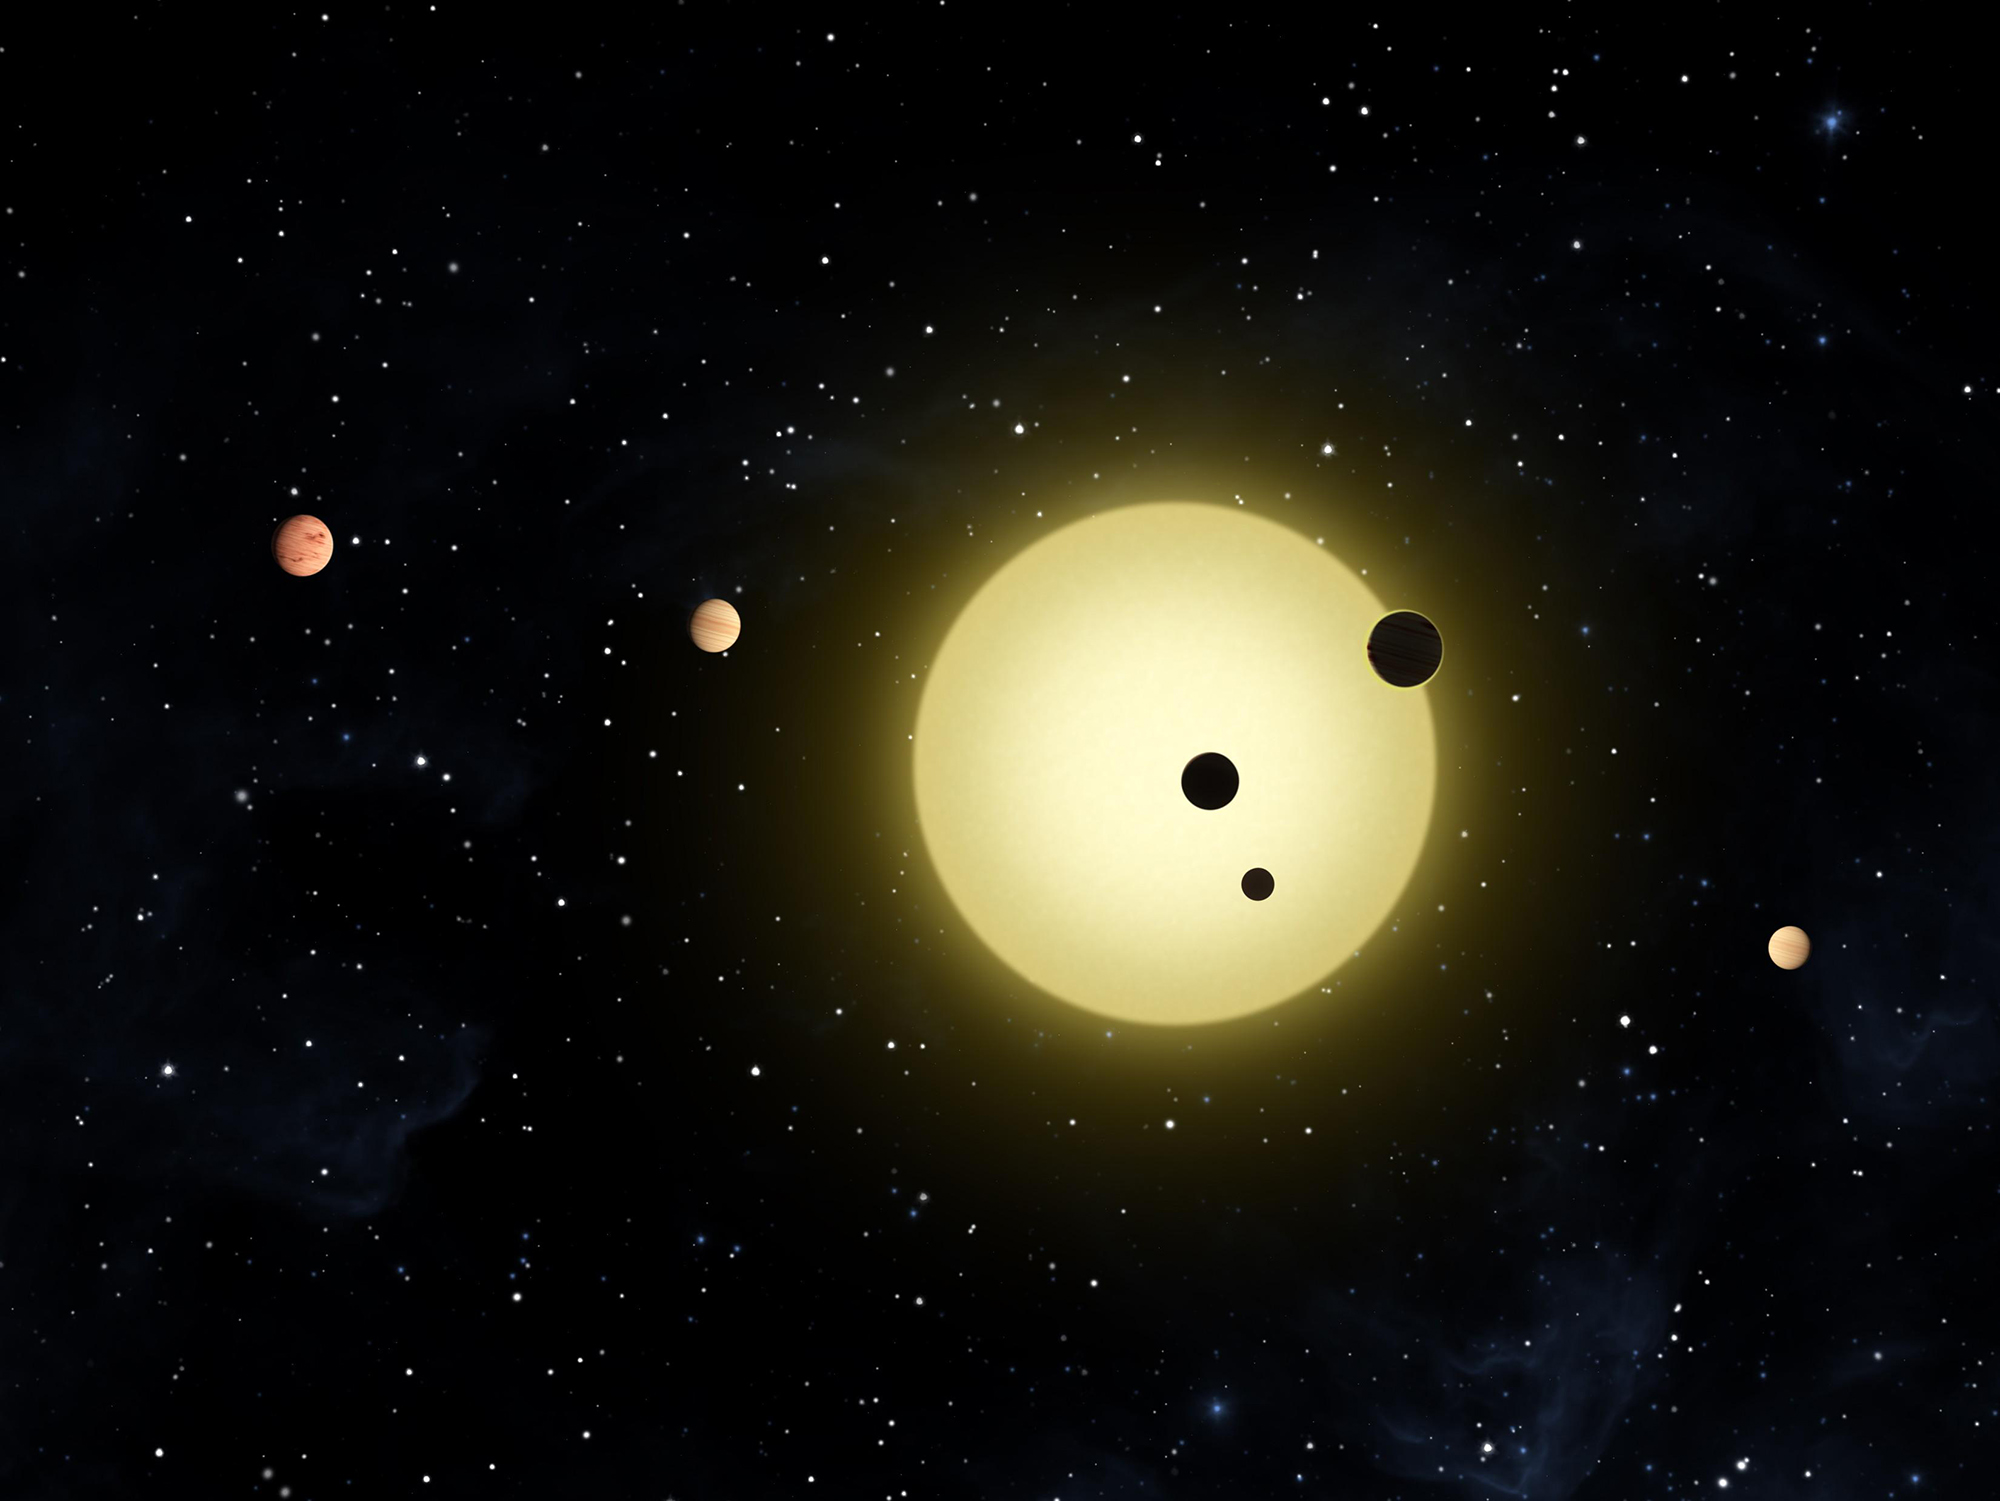 The Kepler-11 exoplanet system, discovered by NASA's Kepler Space Telescope. This artist's conception shows the system's six planets orbiting close to their parent star. Over the past few years, thousands of diverse exoplanets have been identified outside of our solar system. Stars and their orbiting planets appear to form simultaneously in dense interstellar clouds of gas and dust. Image credit: NASA/Tim Pyle